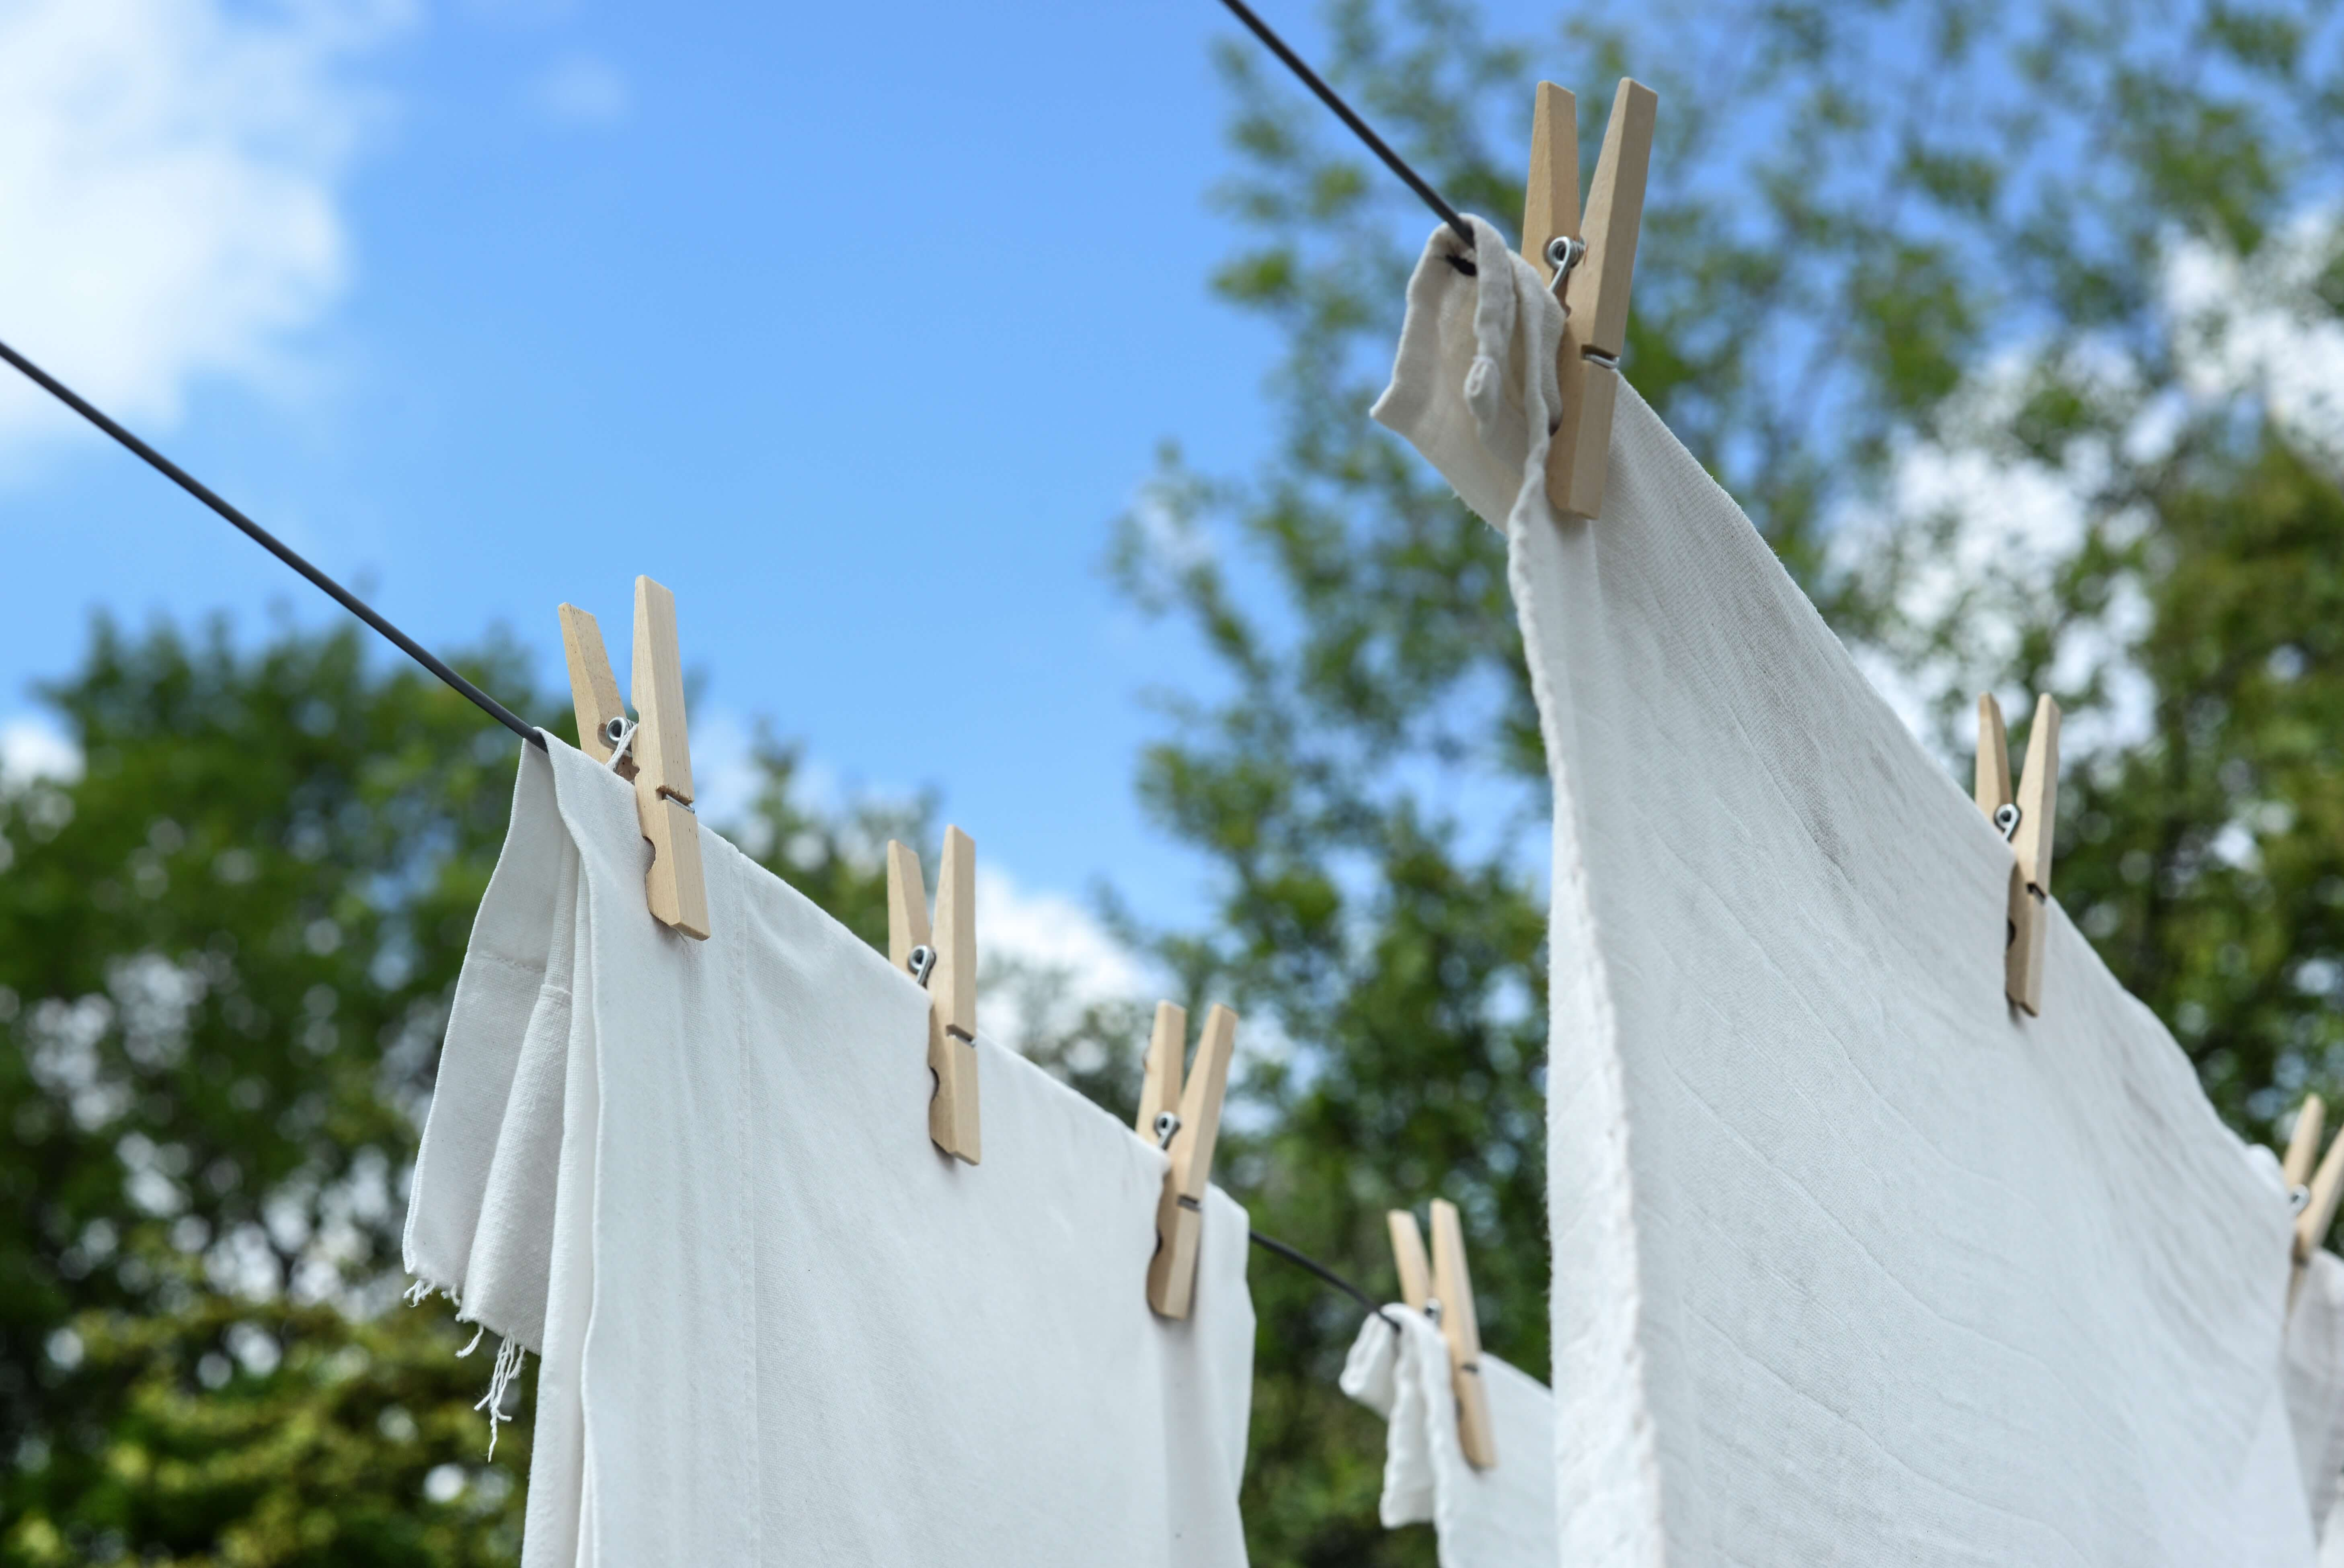 Close Up Clothes Clothesline